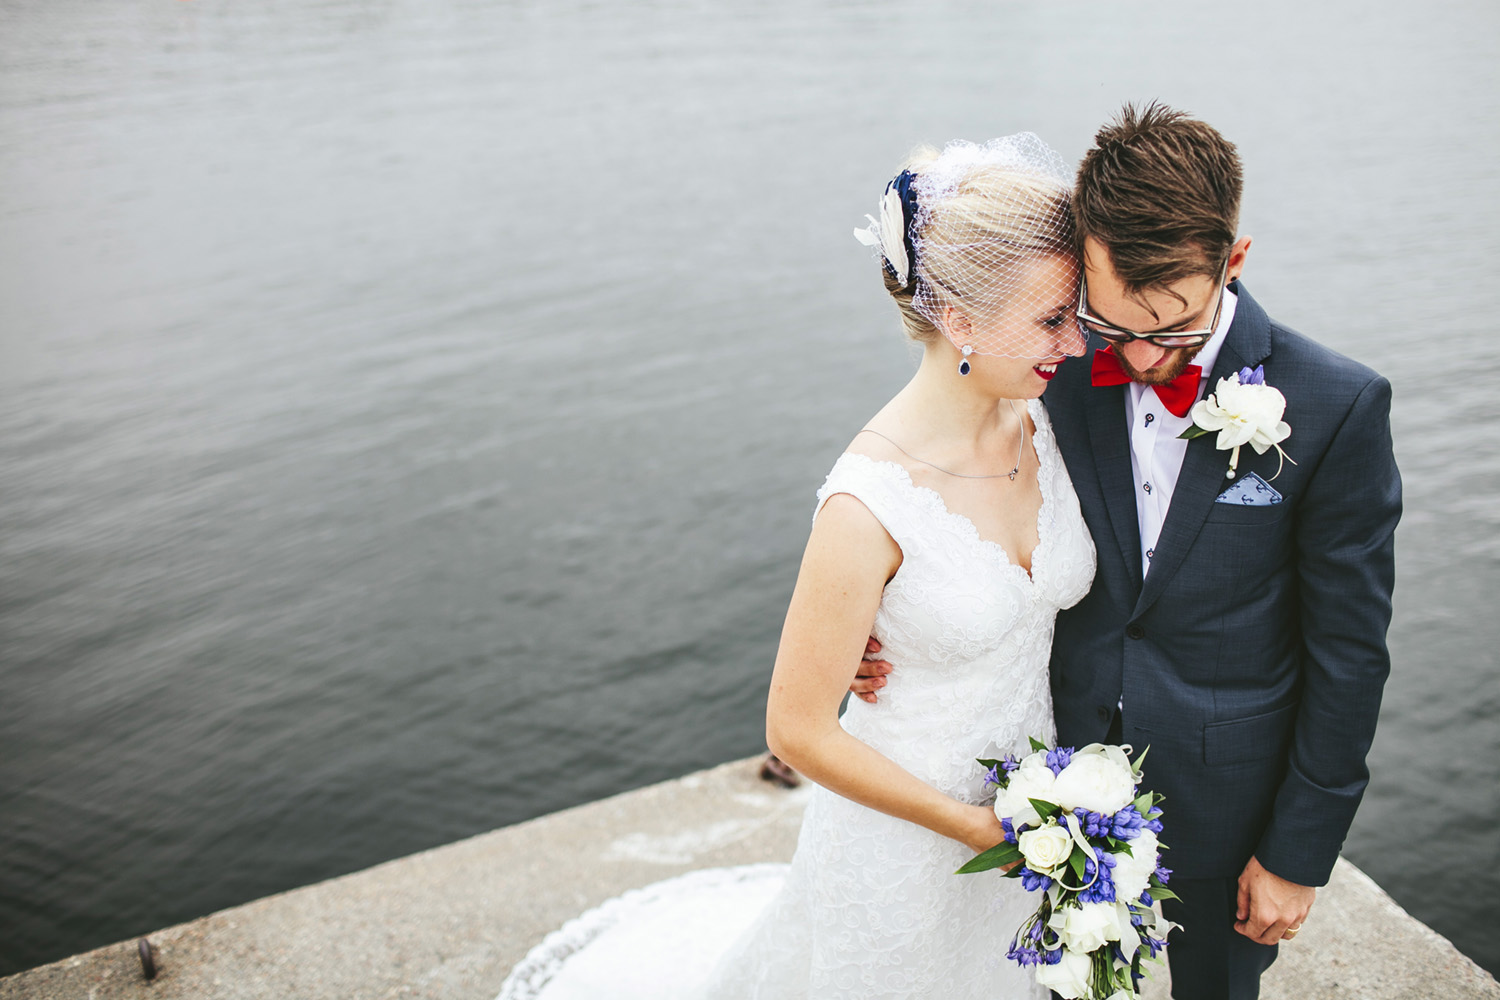 Brandon_werth_Sweden_wedding_Photographer_baltic_sea_47.jpg